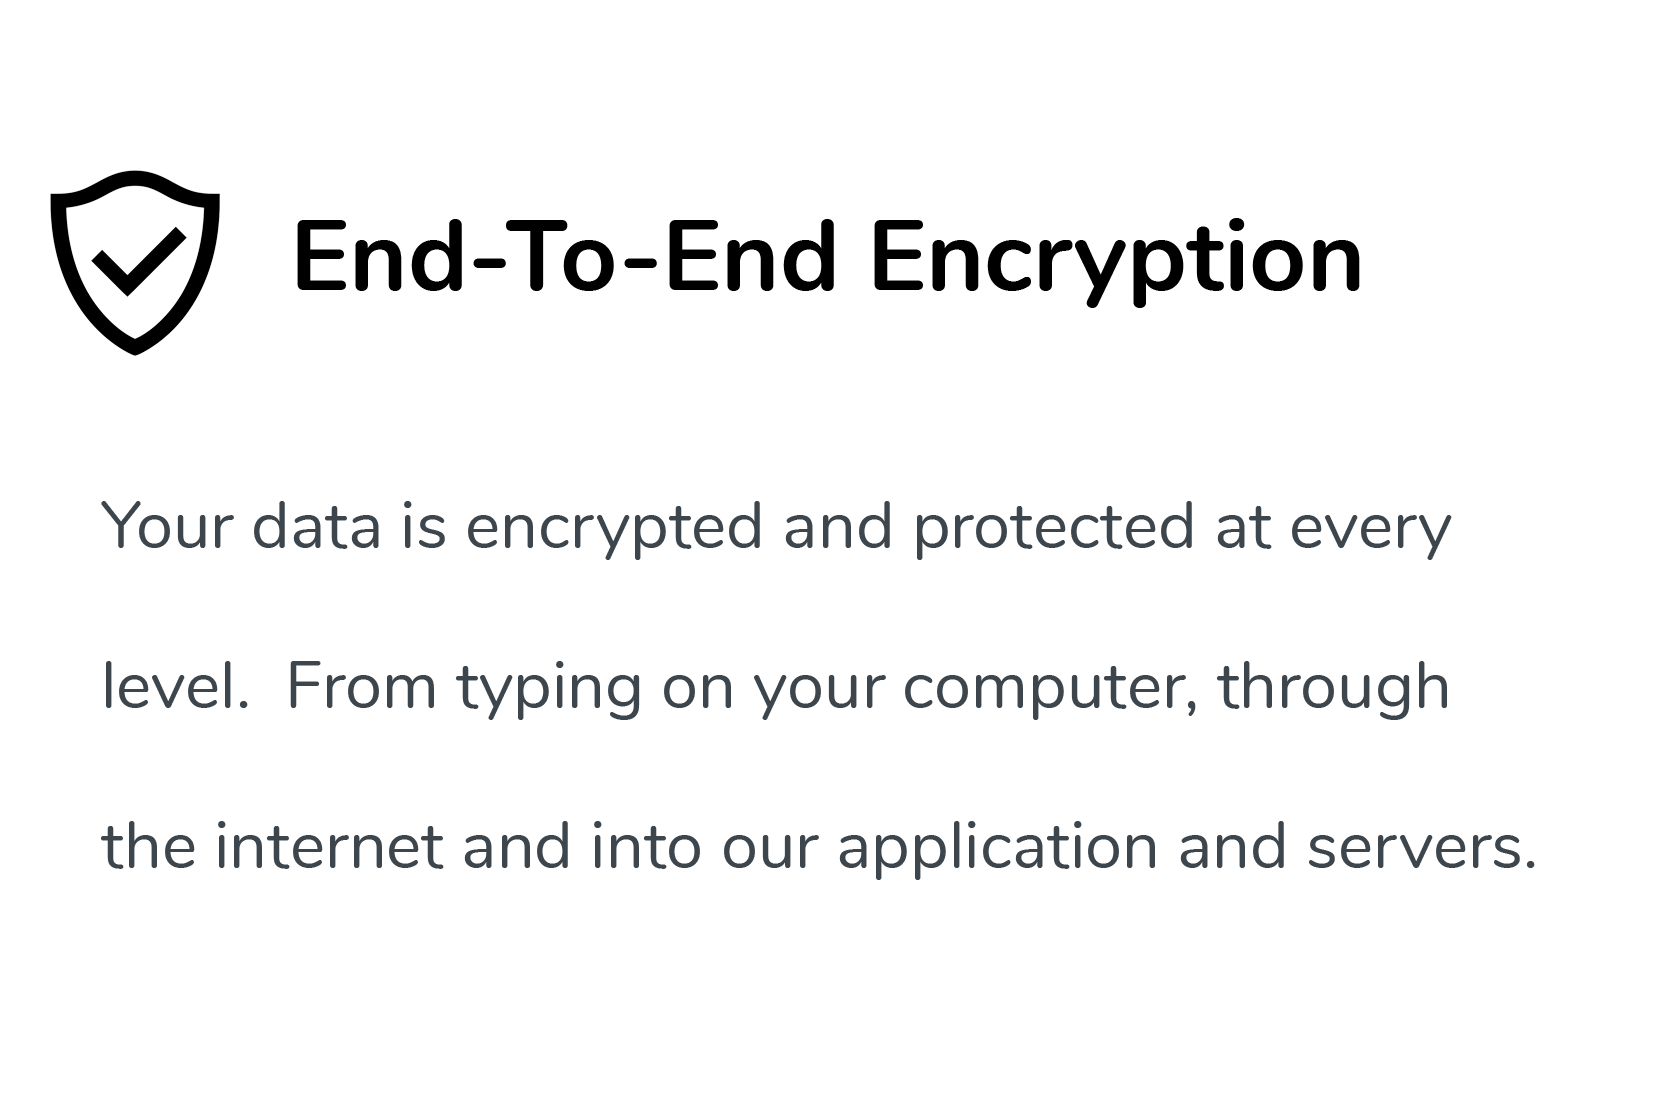 End-to-End Encryption, Your data is encrypted and protected at every level.  From typing on your computer, through the internet and into our application and servers.